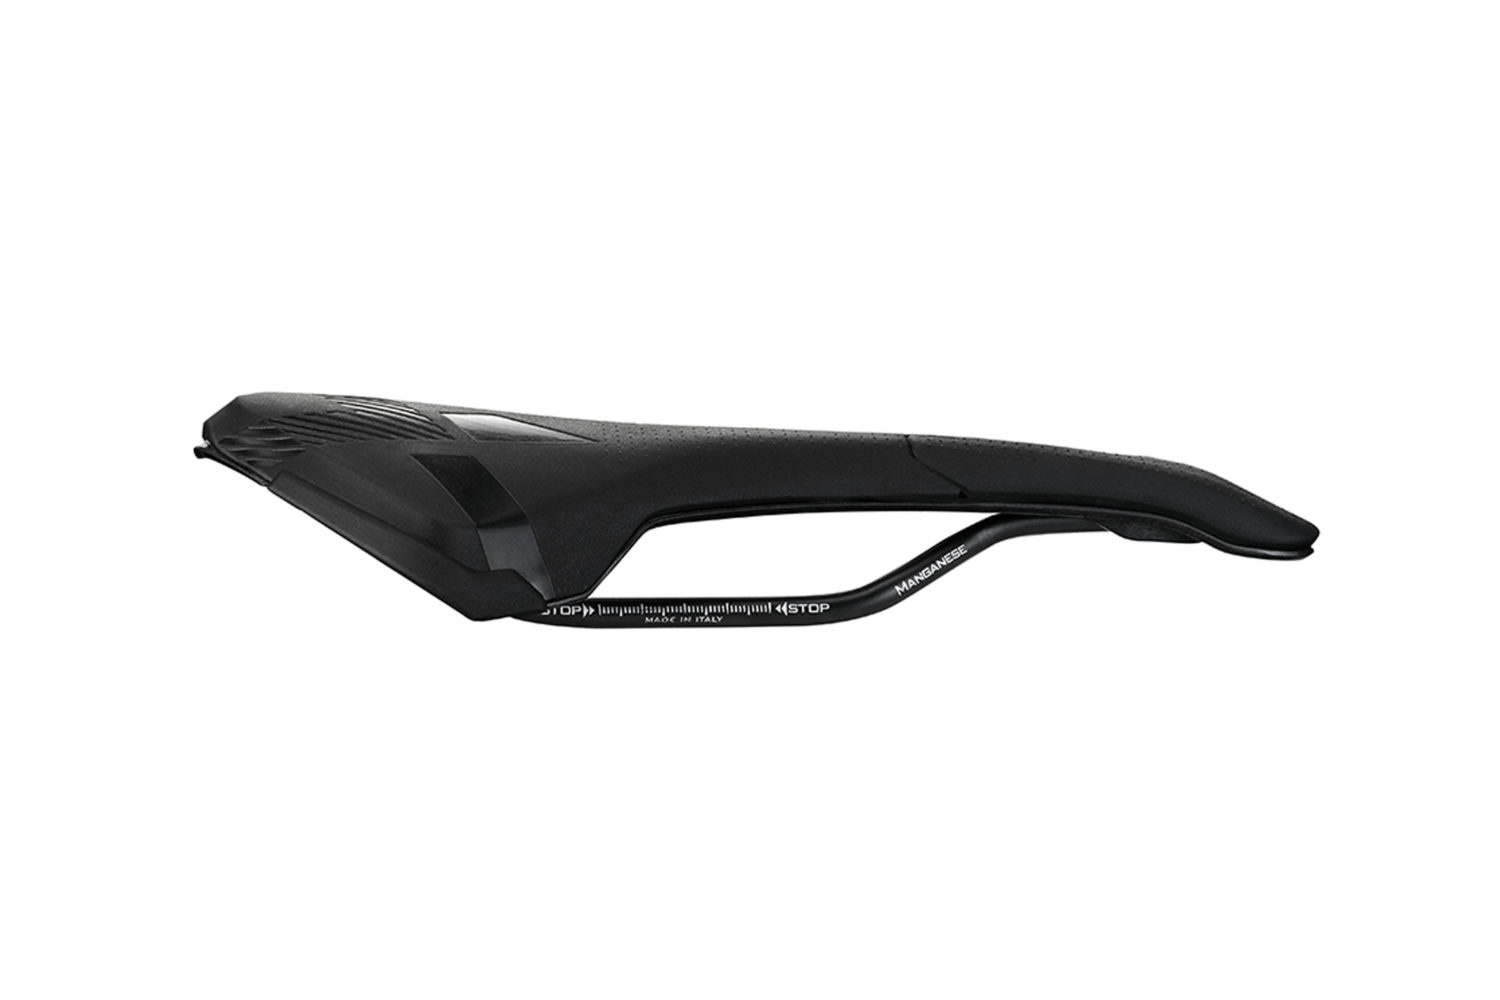 SJEDALO SELLE ITALIA X-LR TM AIR CROSS SF L MN AM